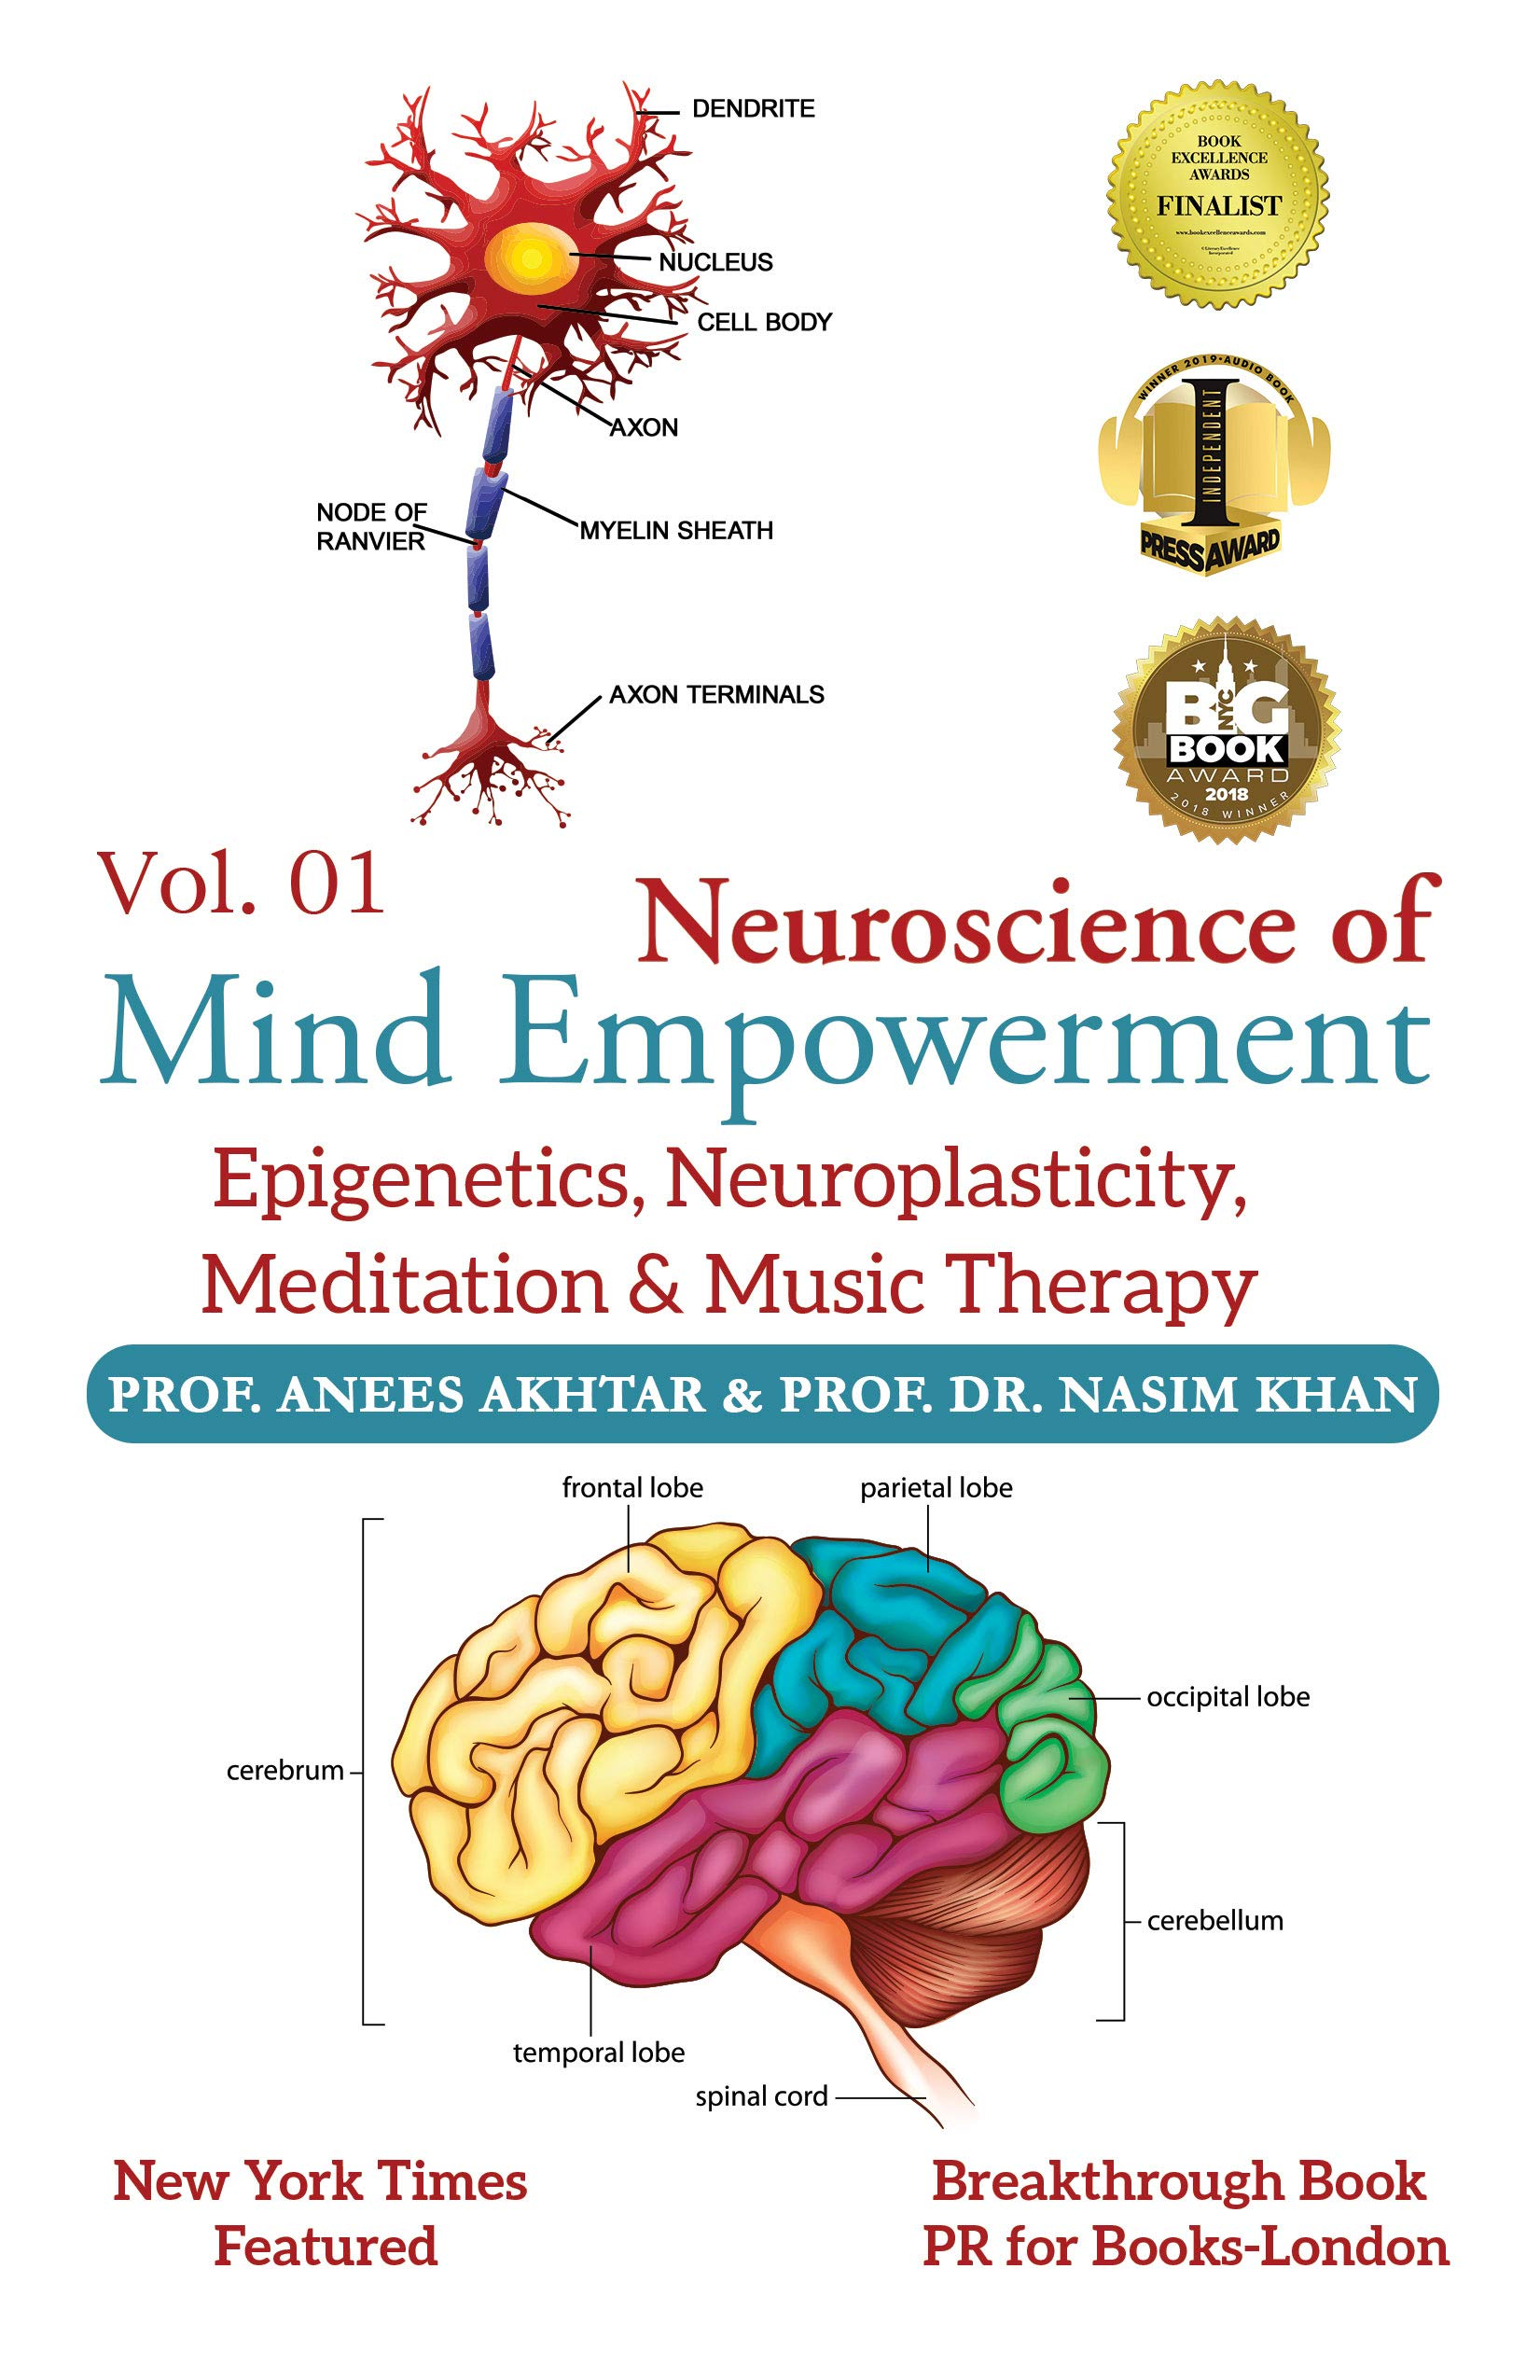 Neuroscience of Mind Empowerment : Epigenetics, Neuroplasticity, Meditation, and Music Therapy